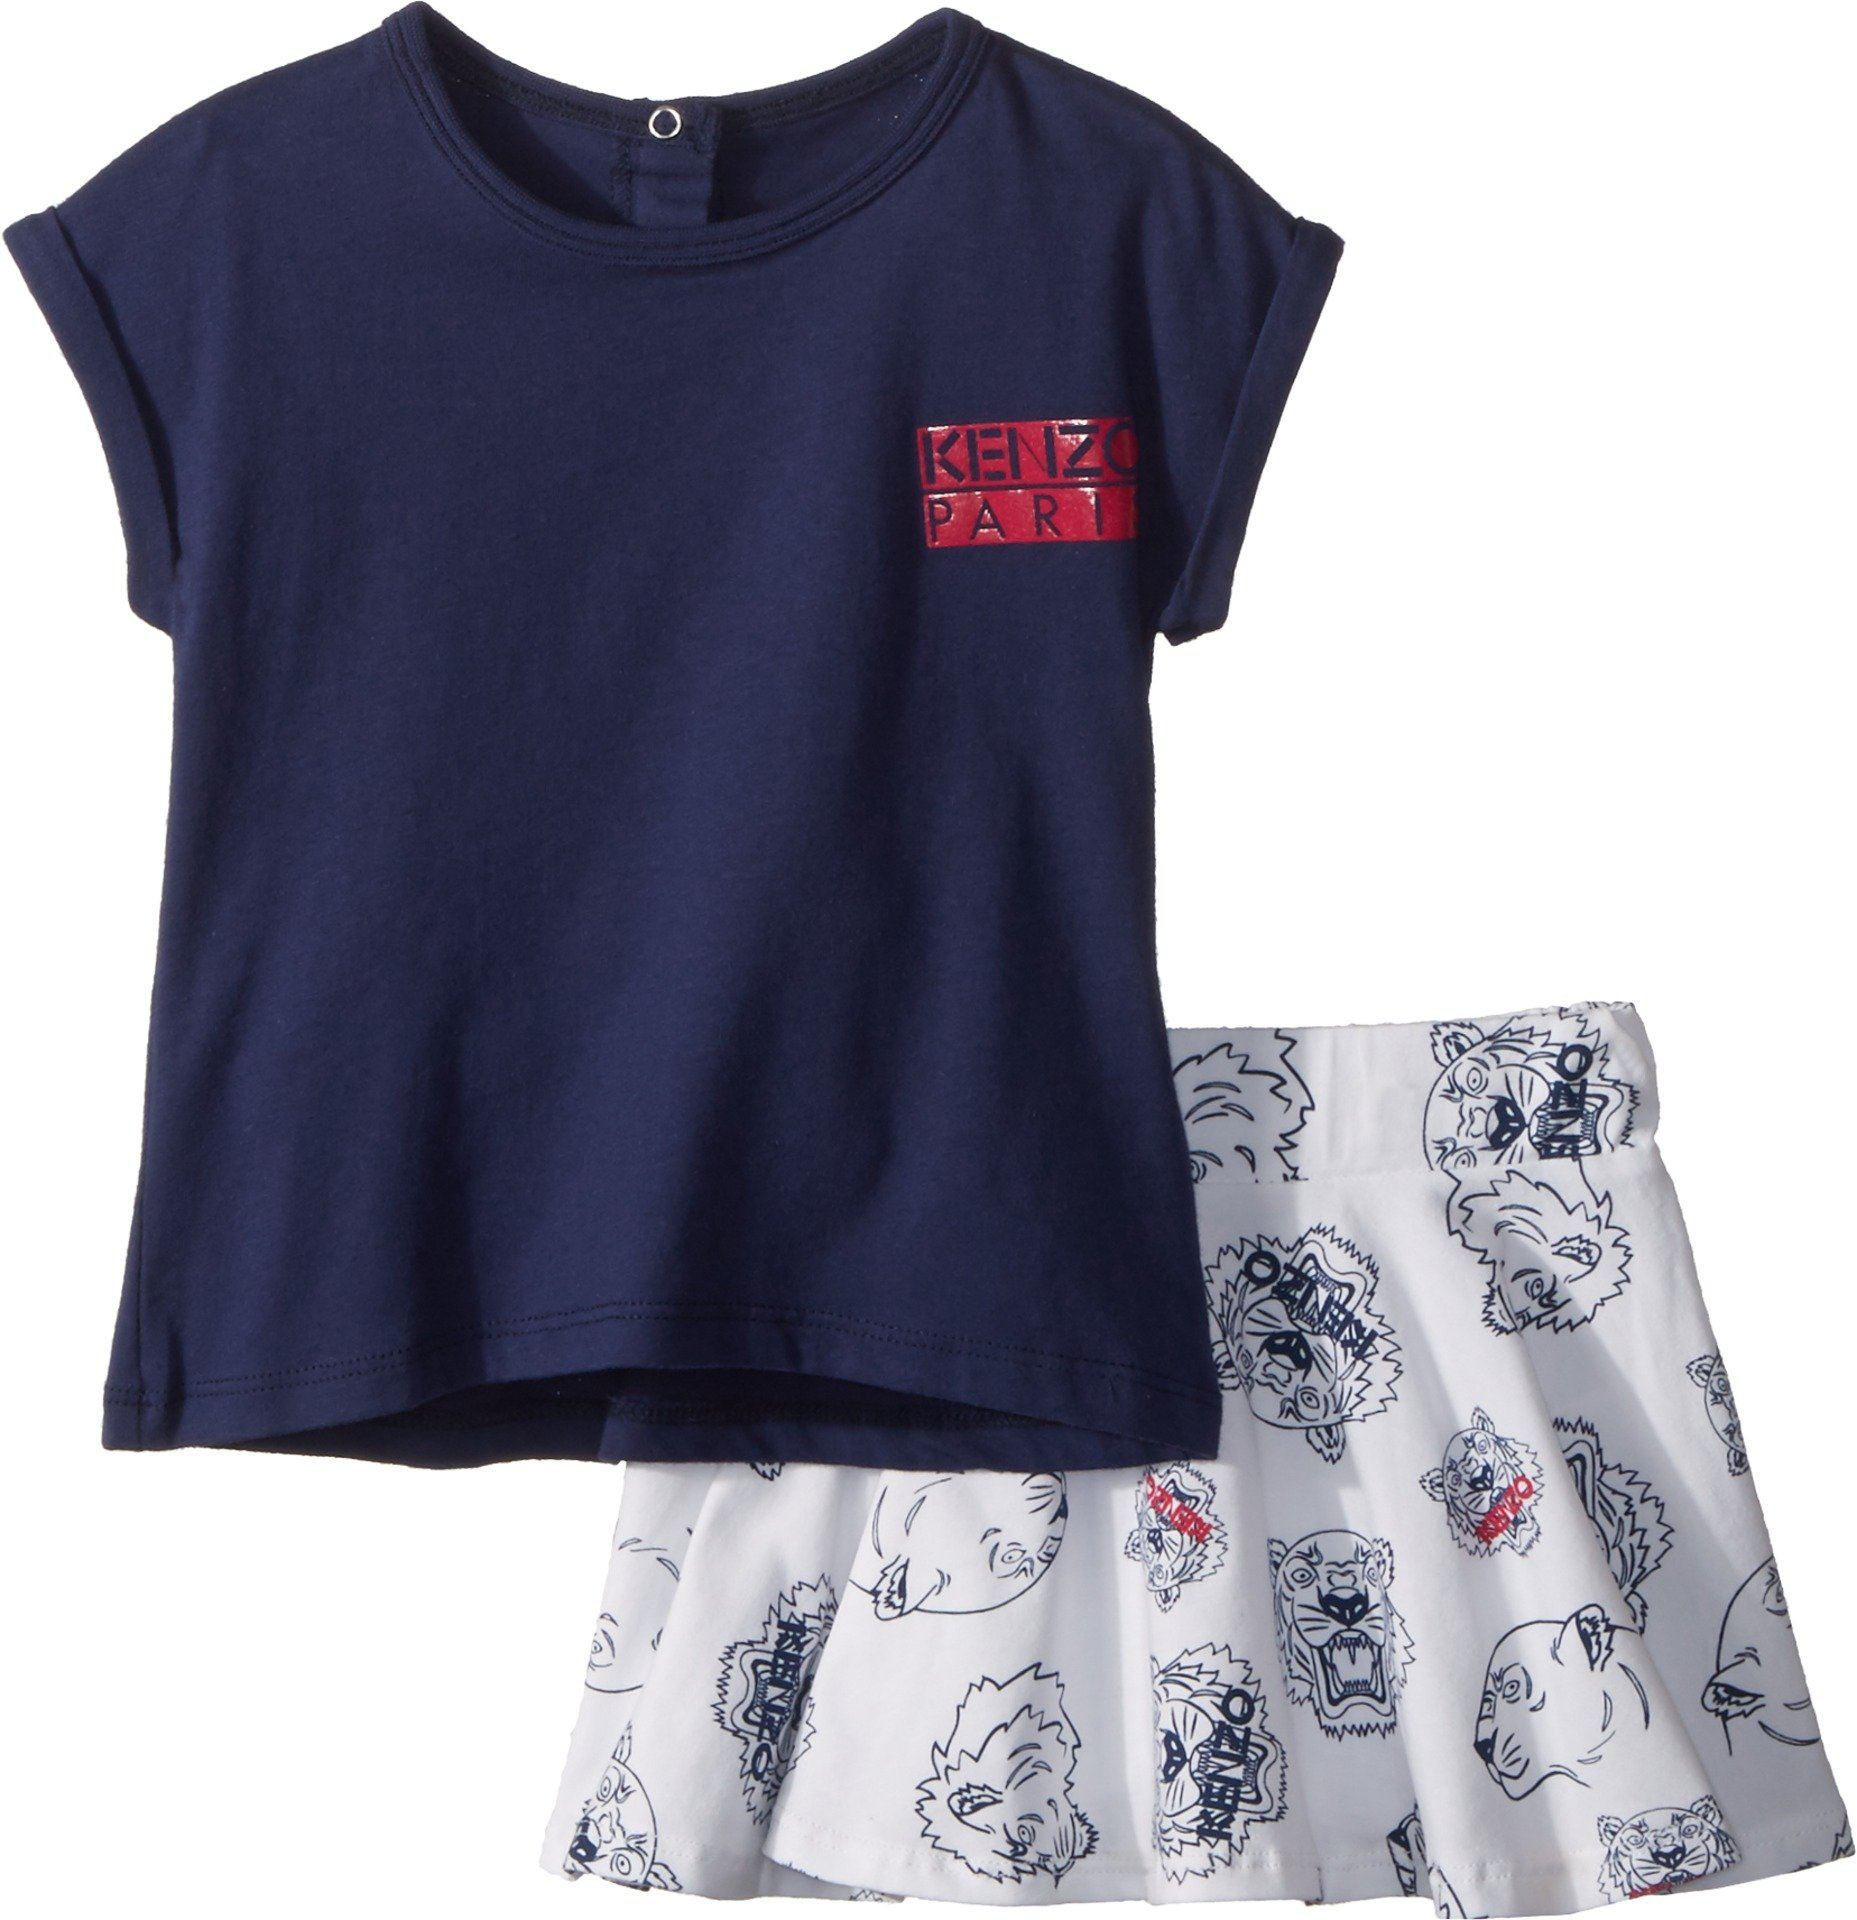 Kenzo Kids Baby Girl's Tee Shirt and Skirt Tigers (Toddler) Navy 3T